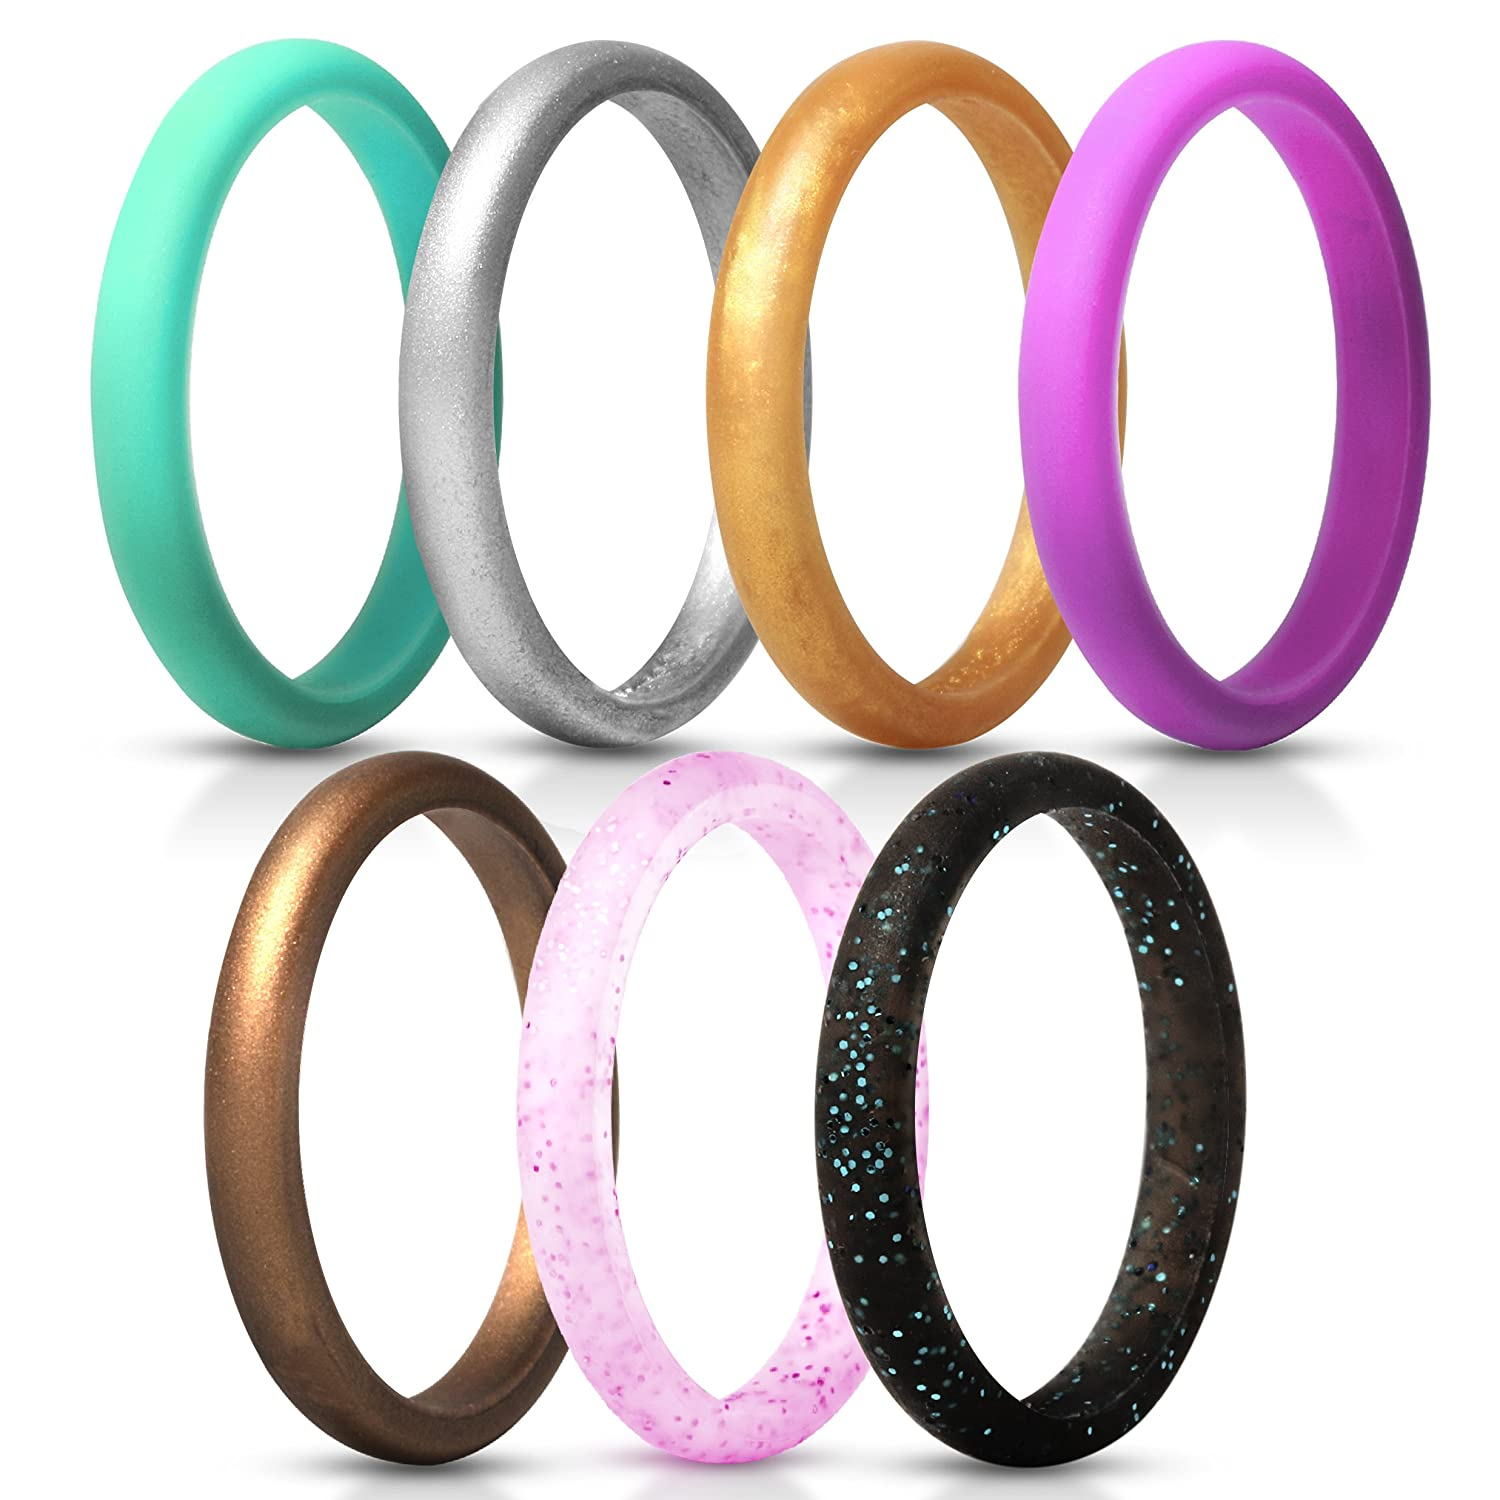 1.8mm Thick 1 Ring 2.5mm Width ThunderFit Womens Thin and Stackable Silicone Rings Wedding Bands 7 Rings